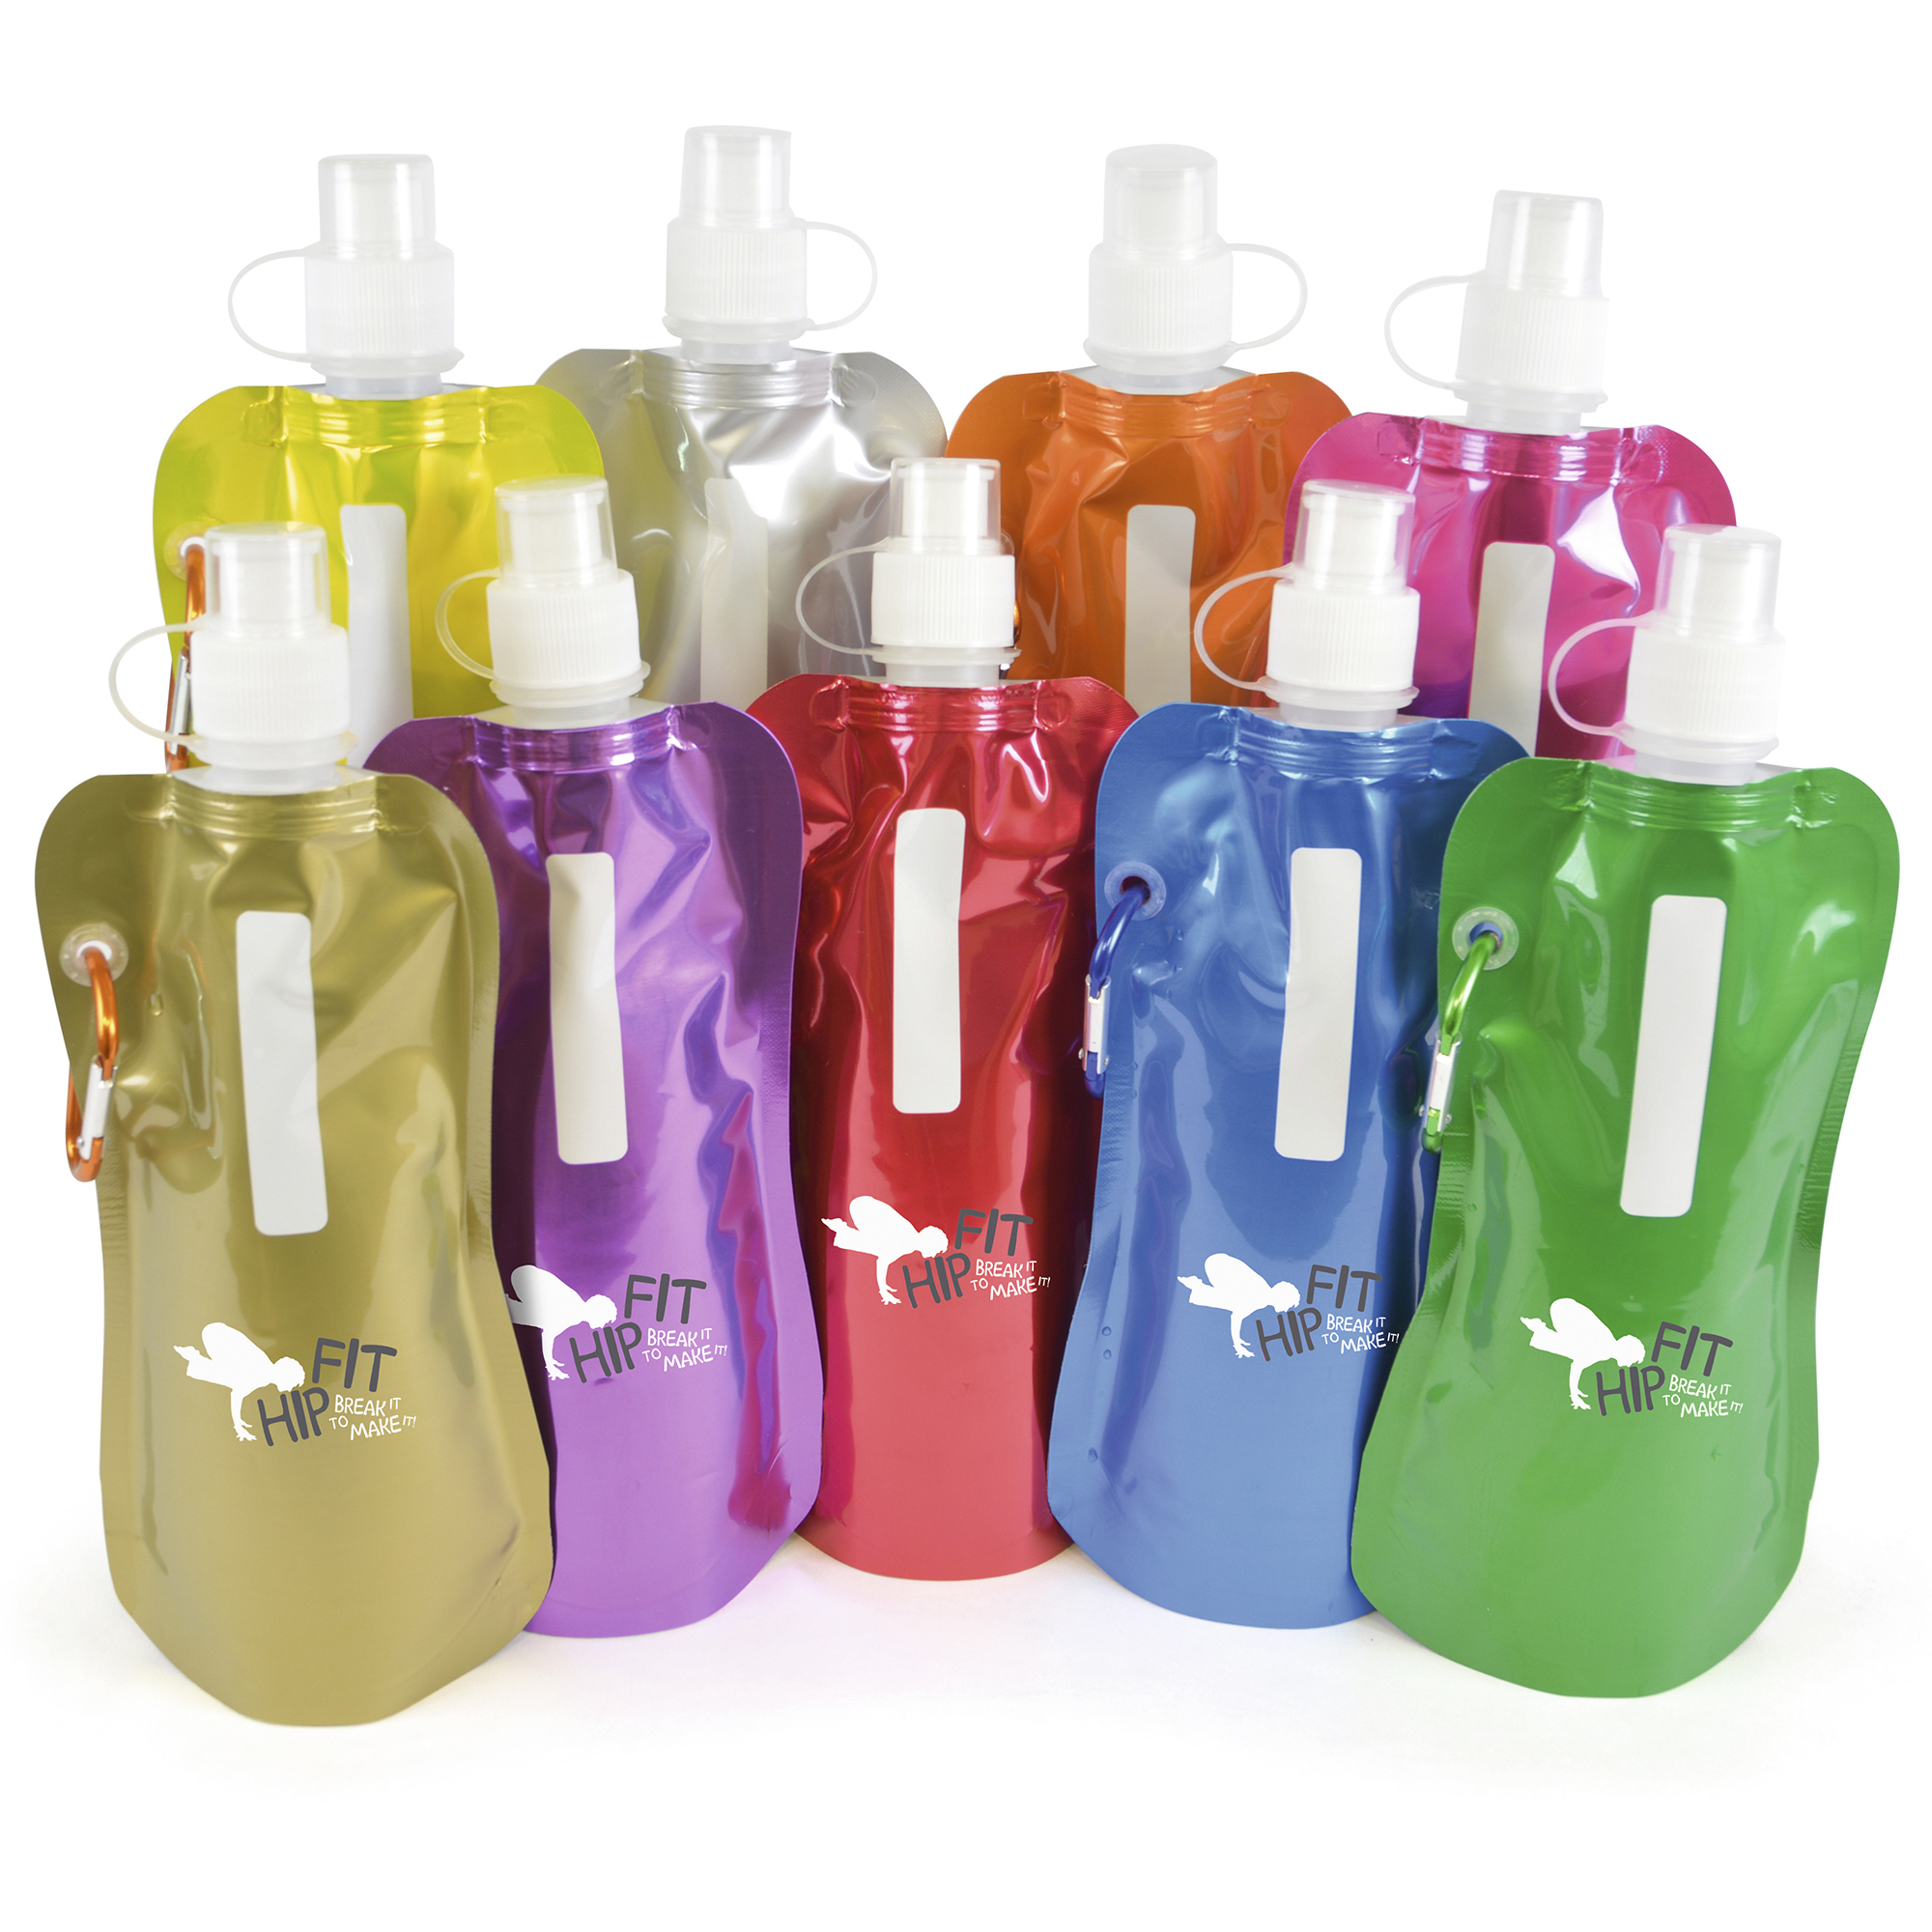 Promotional Metallic fold up bottle